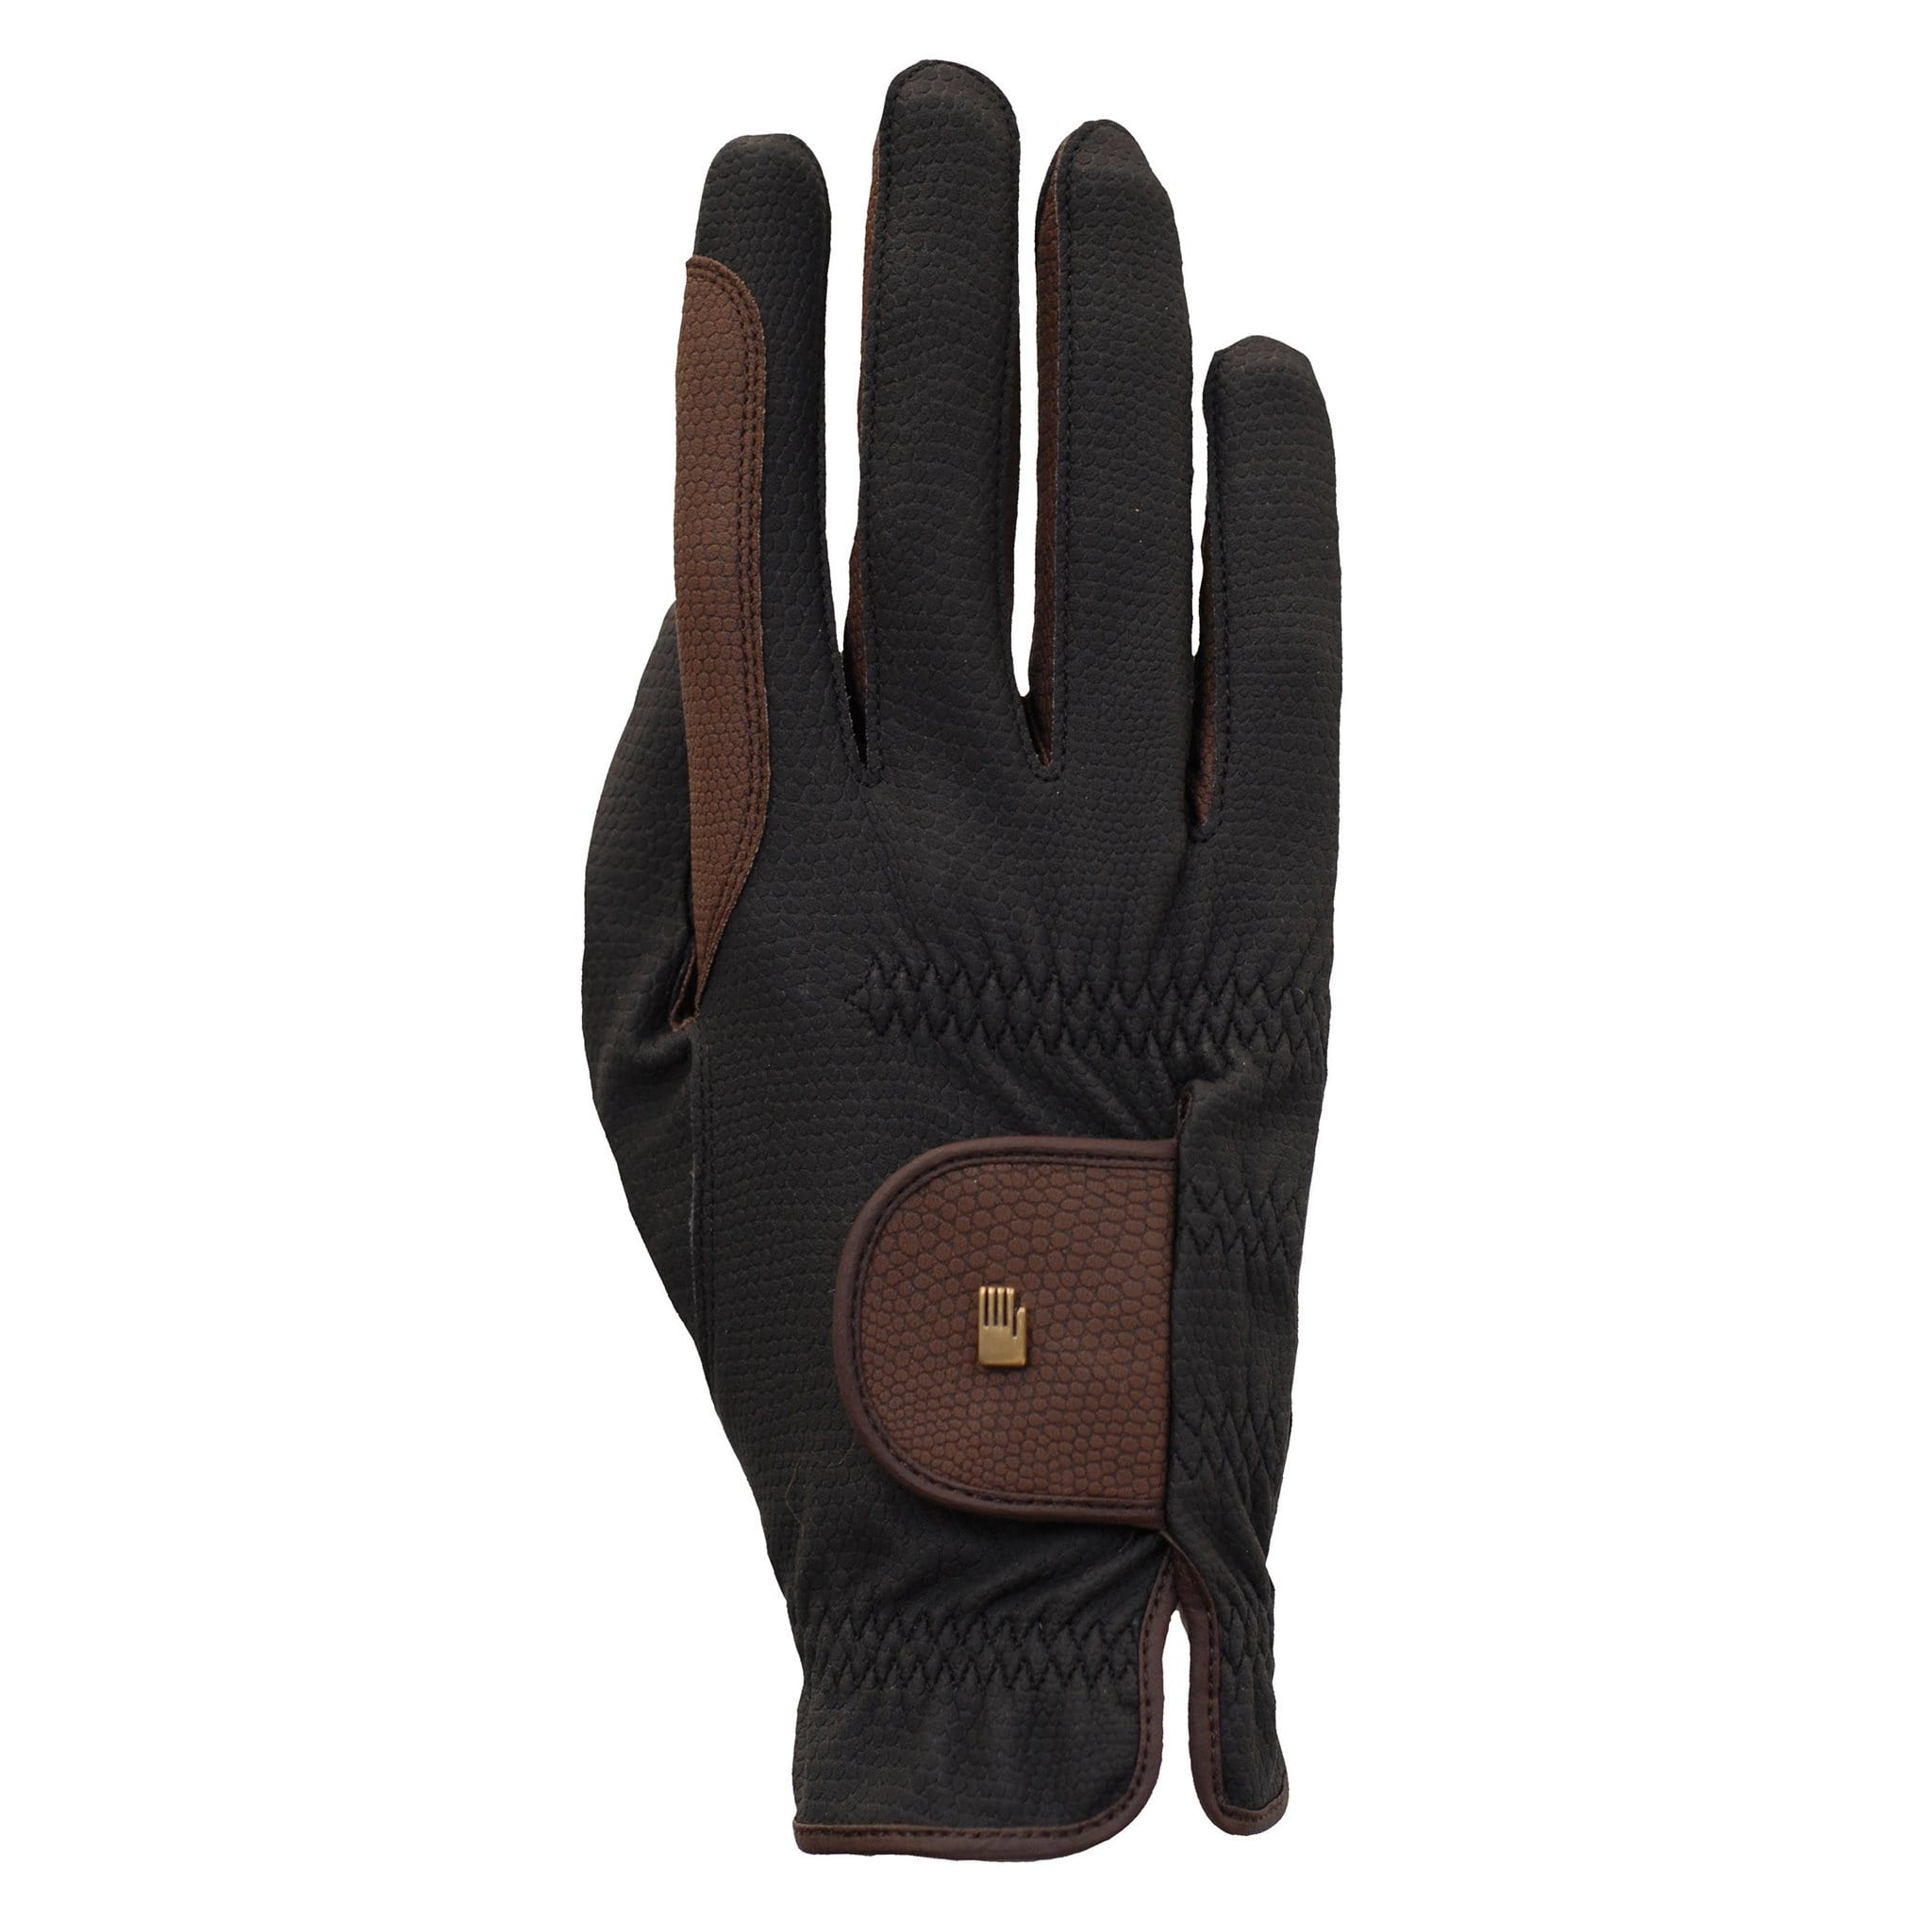 Roeckl Malta Winter Gloves 3301-545-079 Black and Mocha Back View